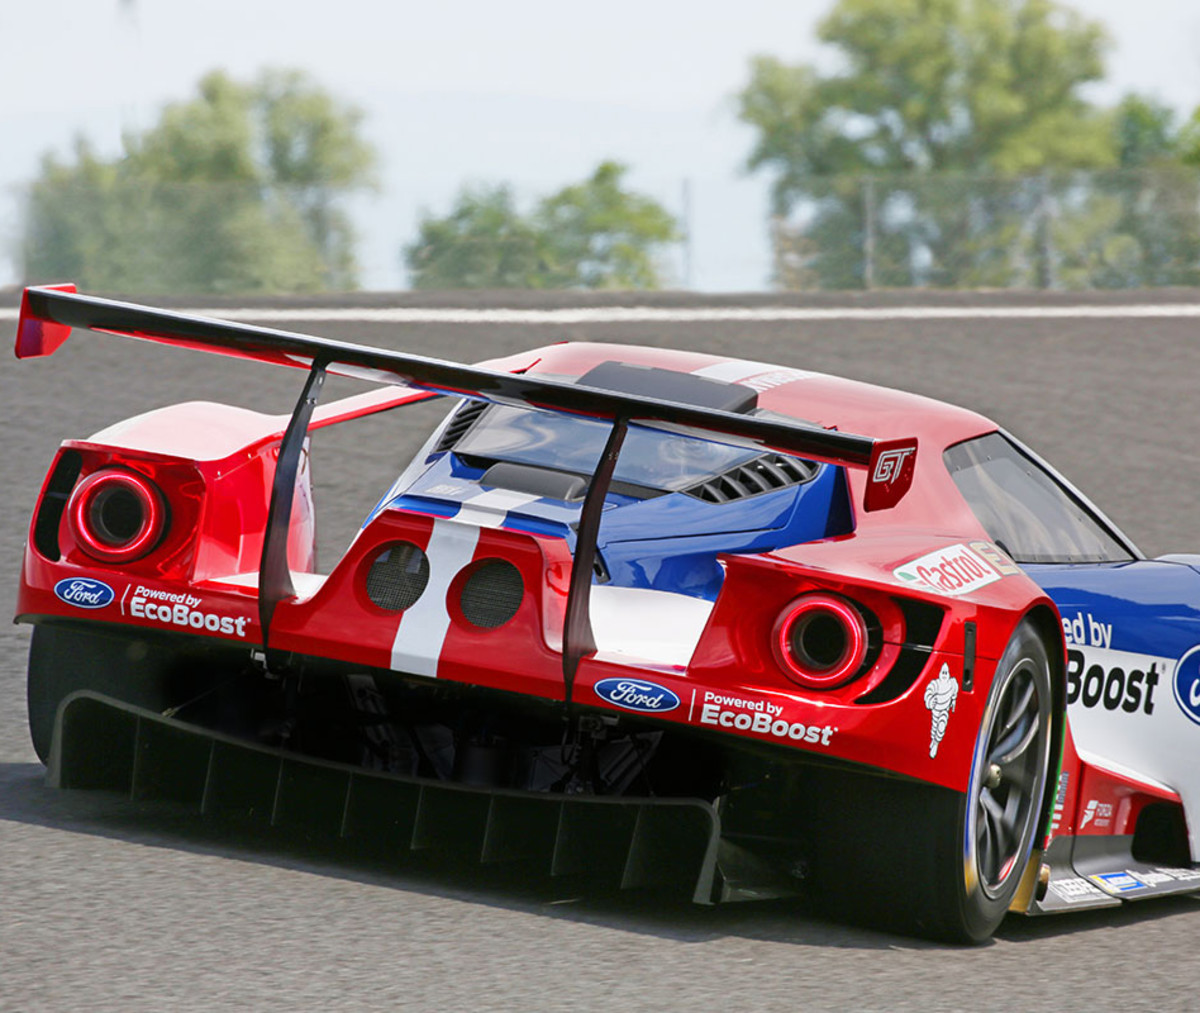 thedrive-bodyphoto2-fordgt.jpg